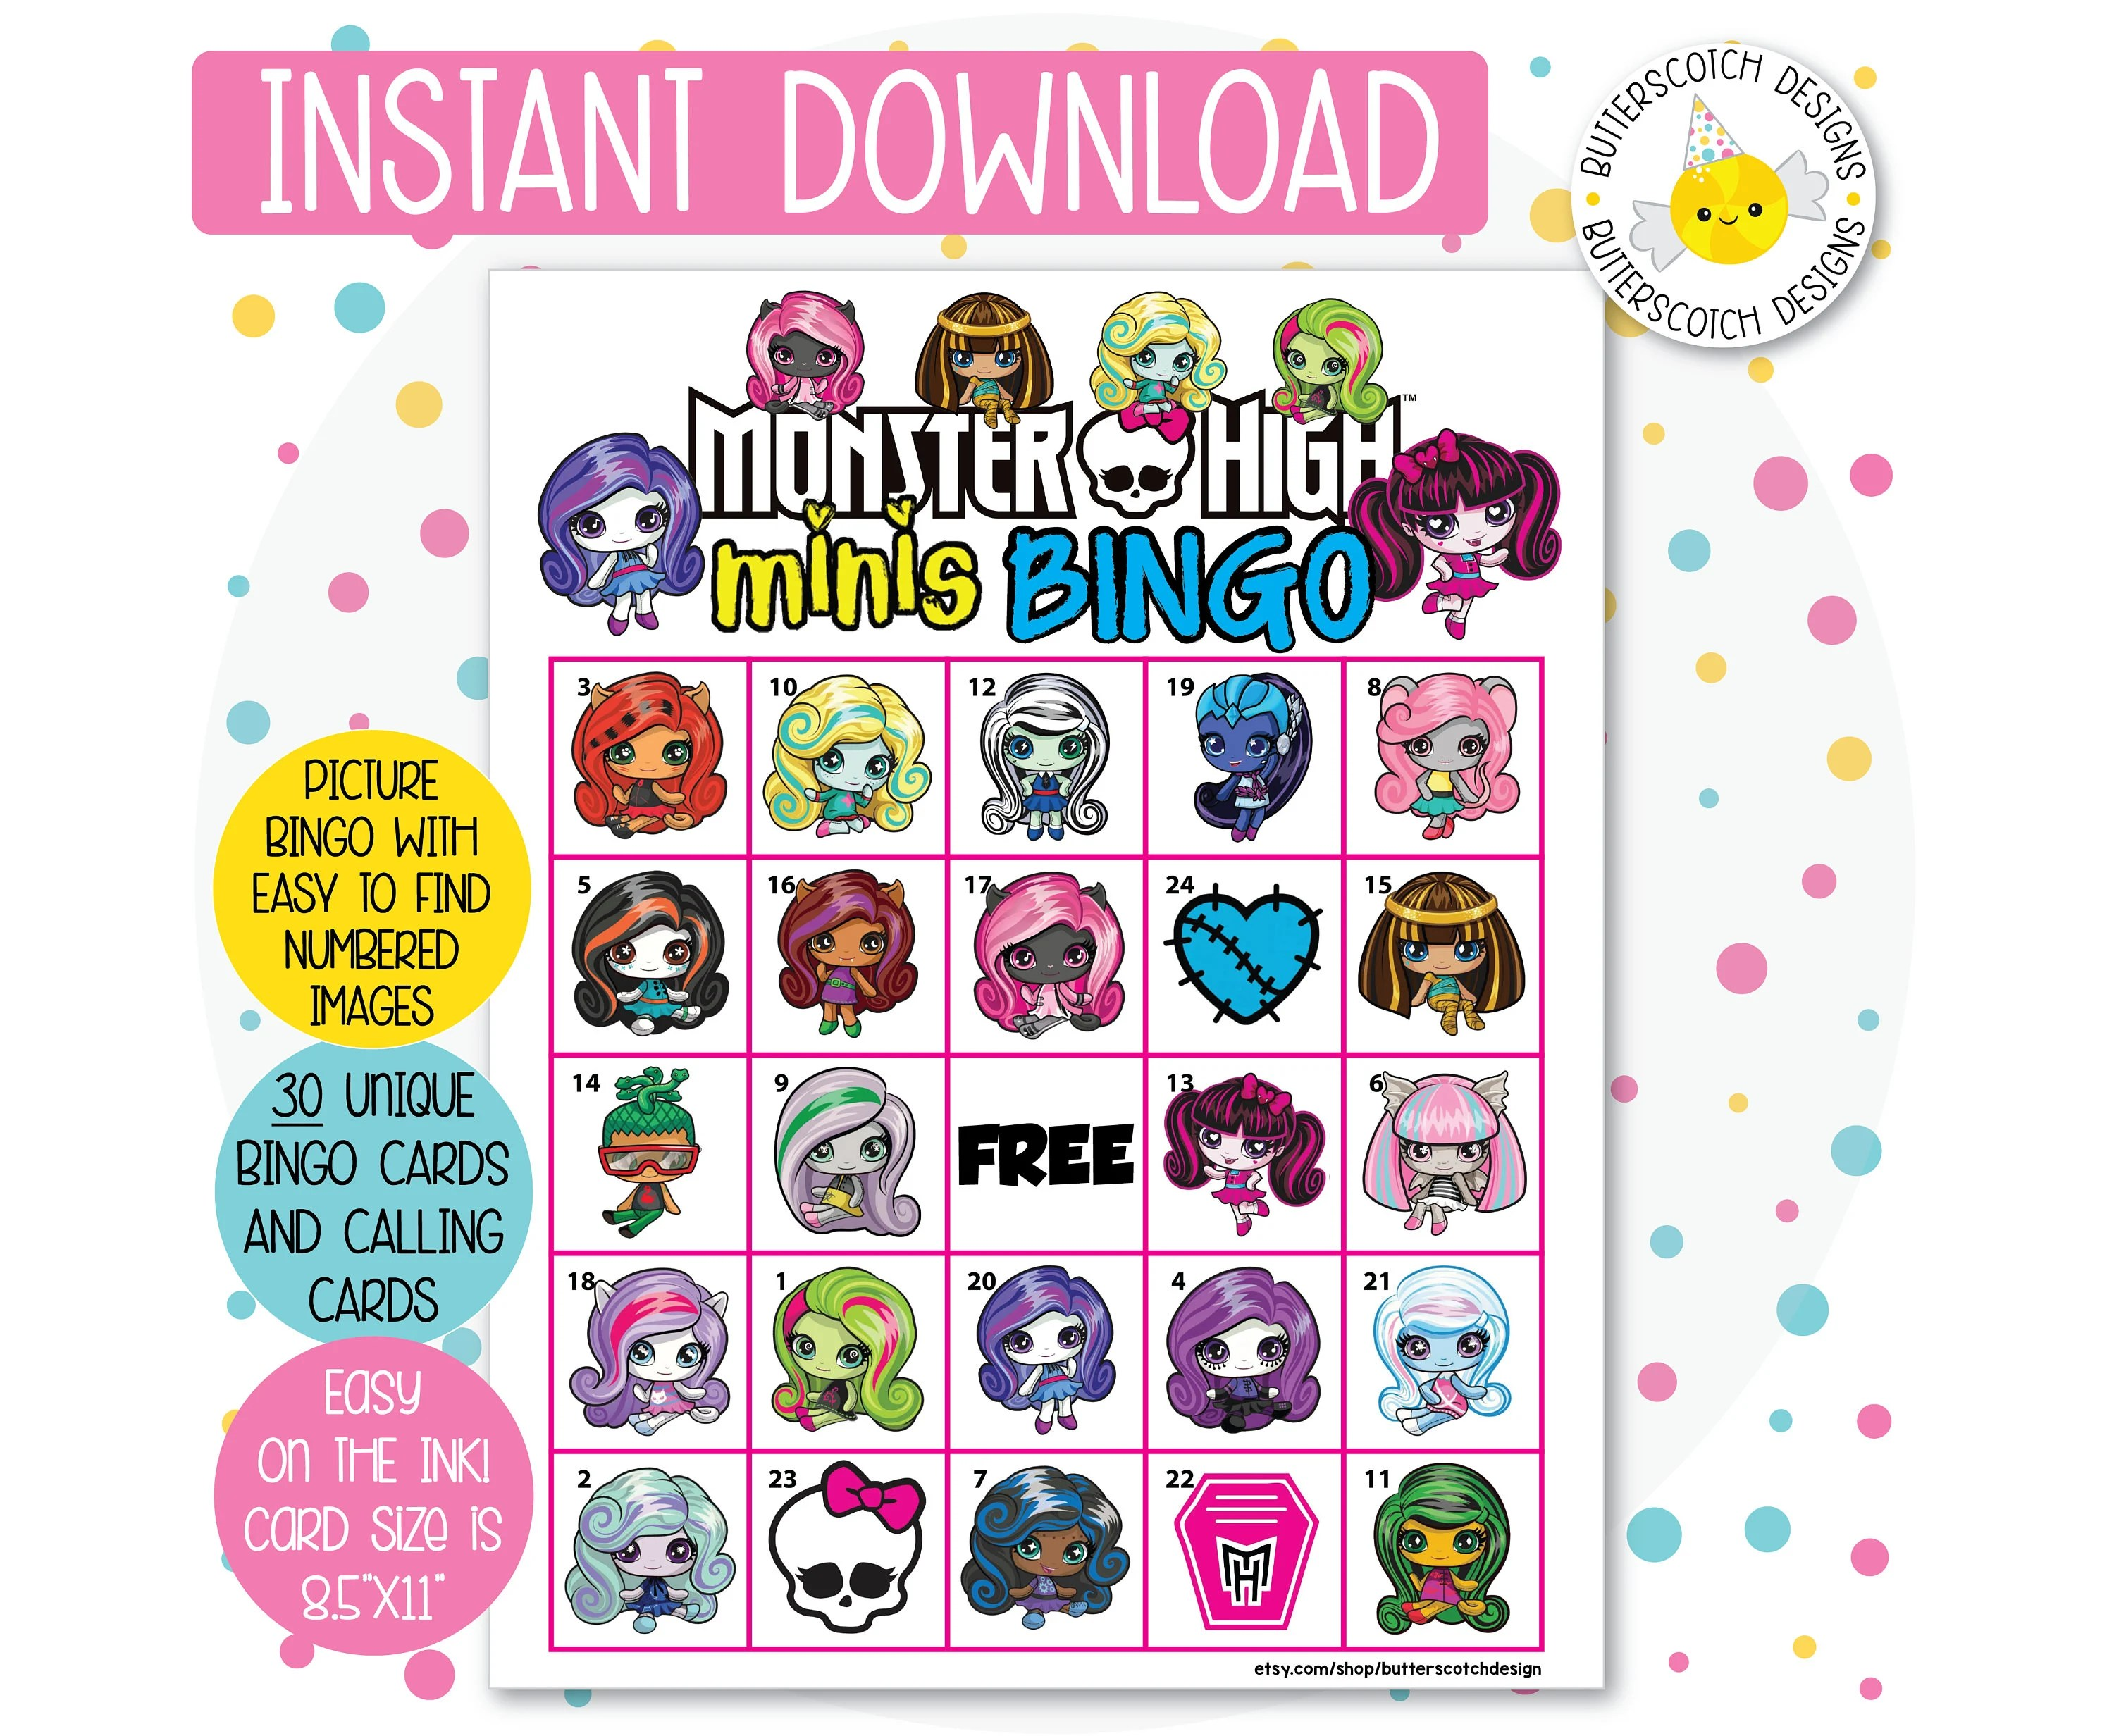 Monster High Minis Printable Bingo Cards 30 Different